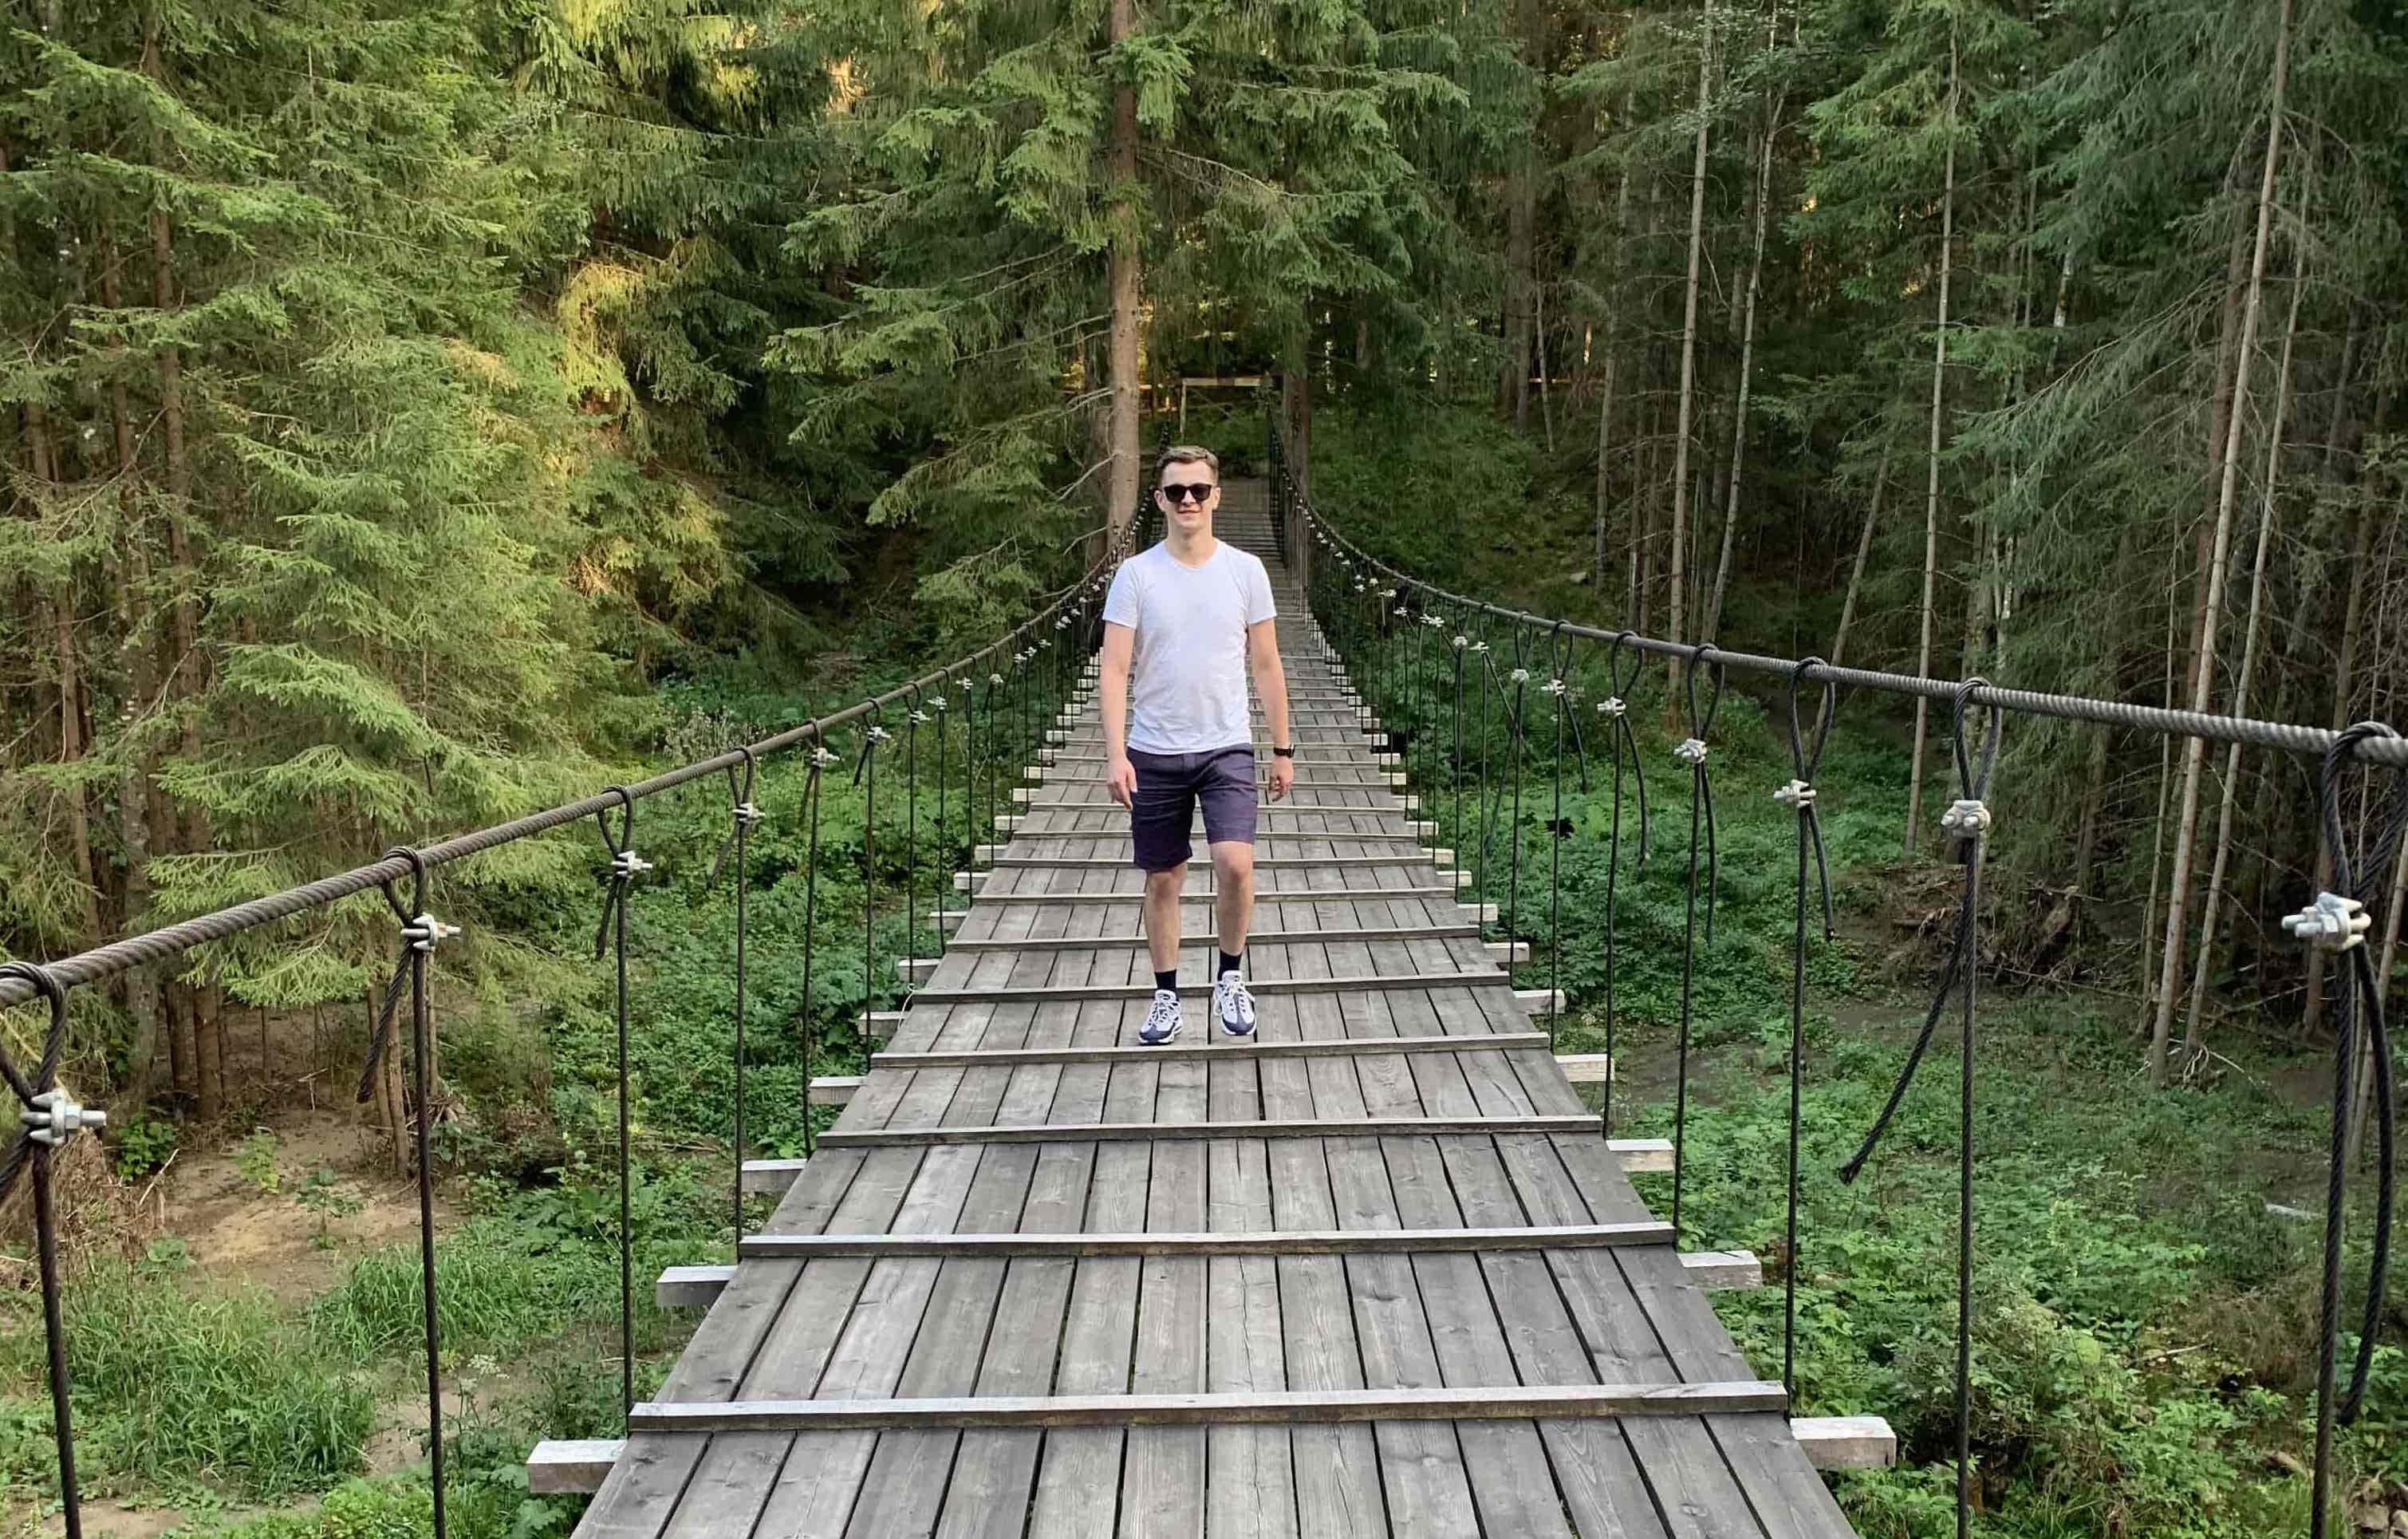 It's me somewhere in Carpathian Mountains